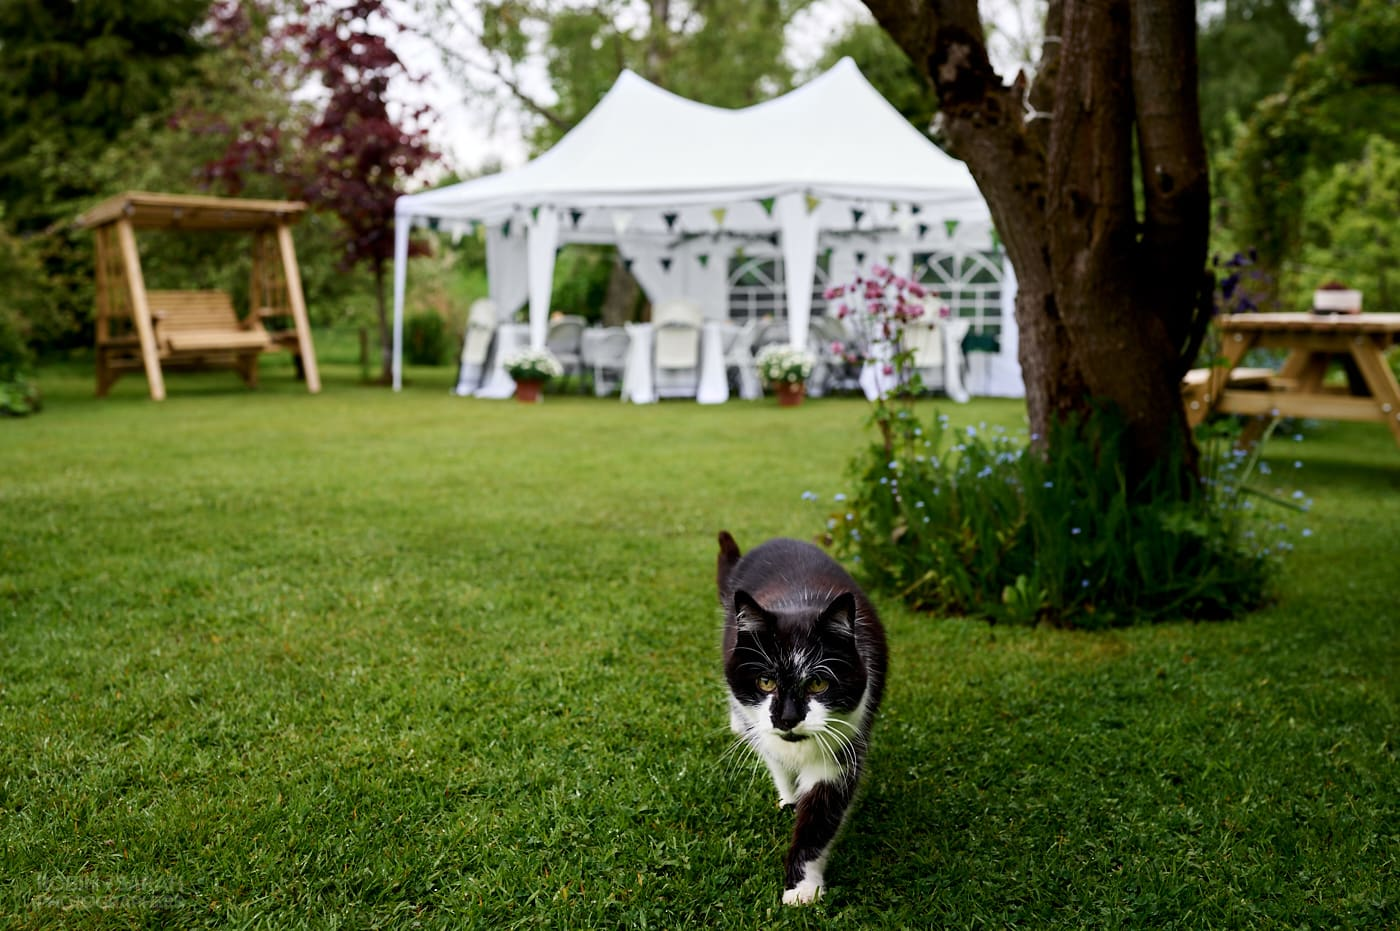 Small marquee set up in garden for wedding as black and white cat walks by